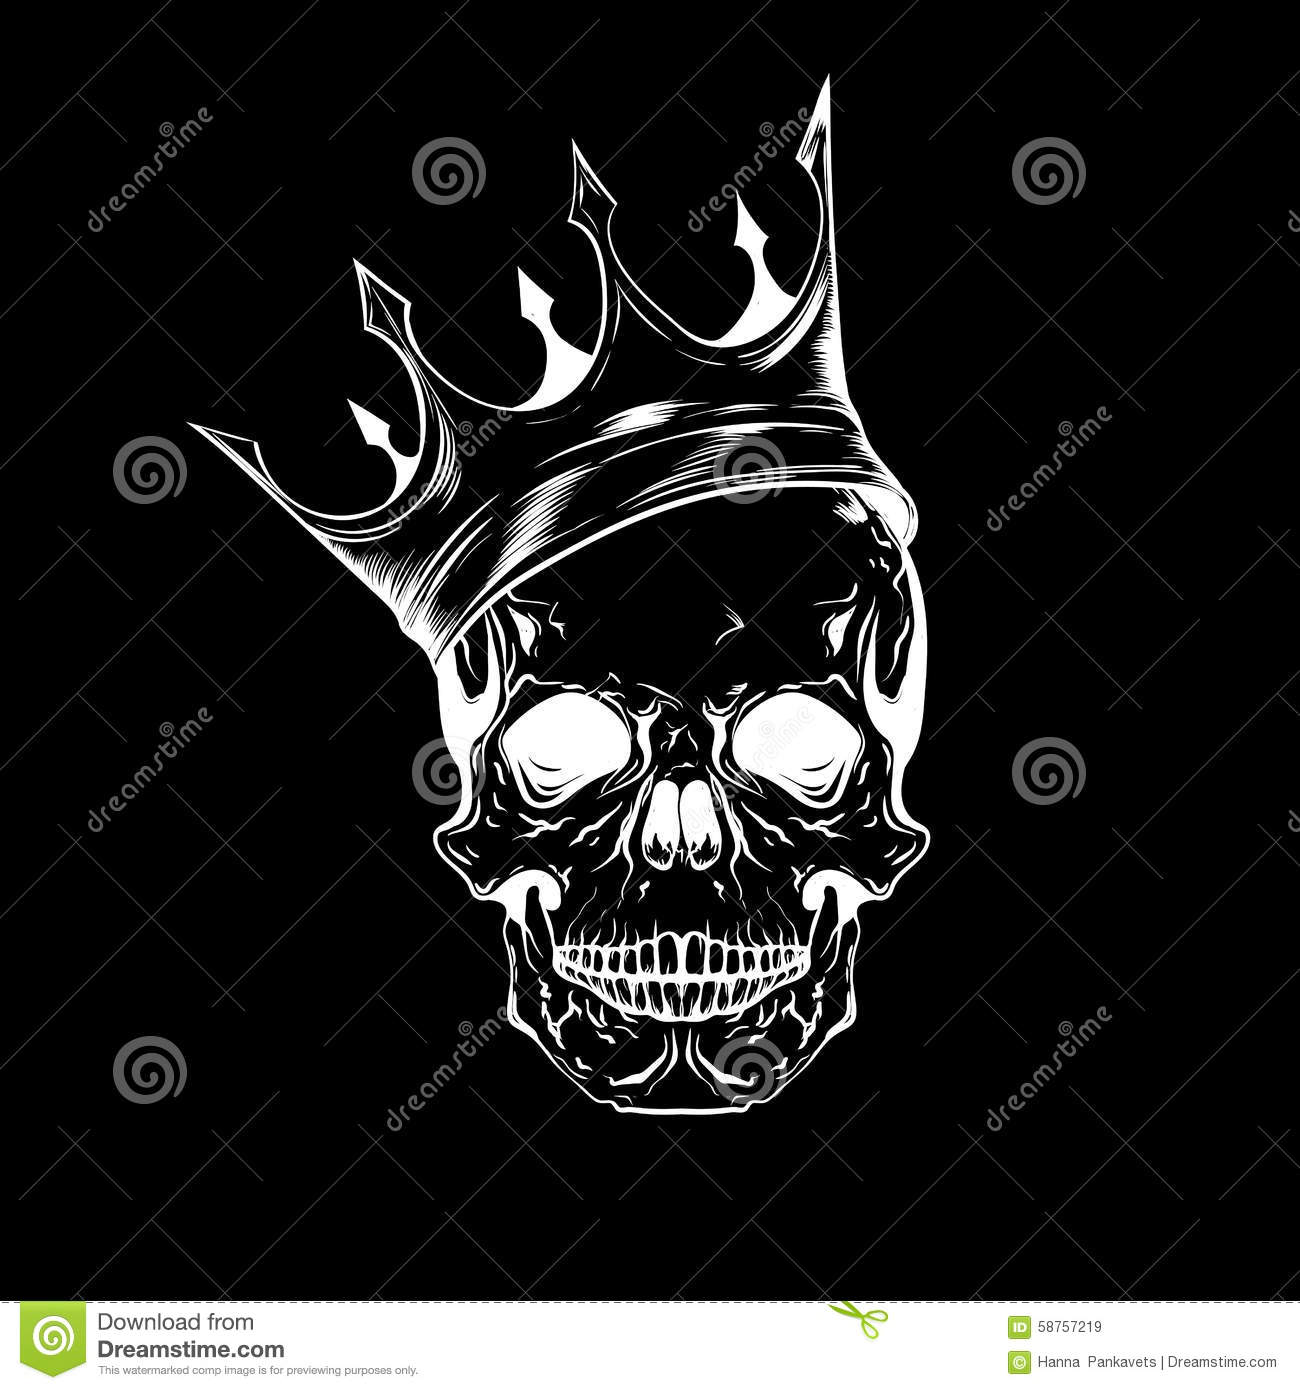 Crown Tattoo Line Drawing : Hand drawn sketch scull with crown tattoo line art